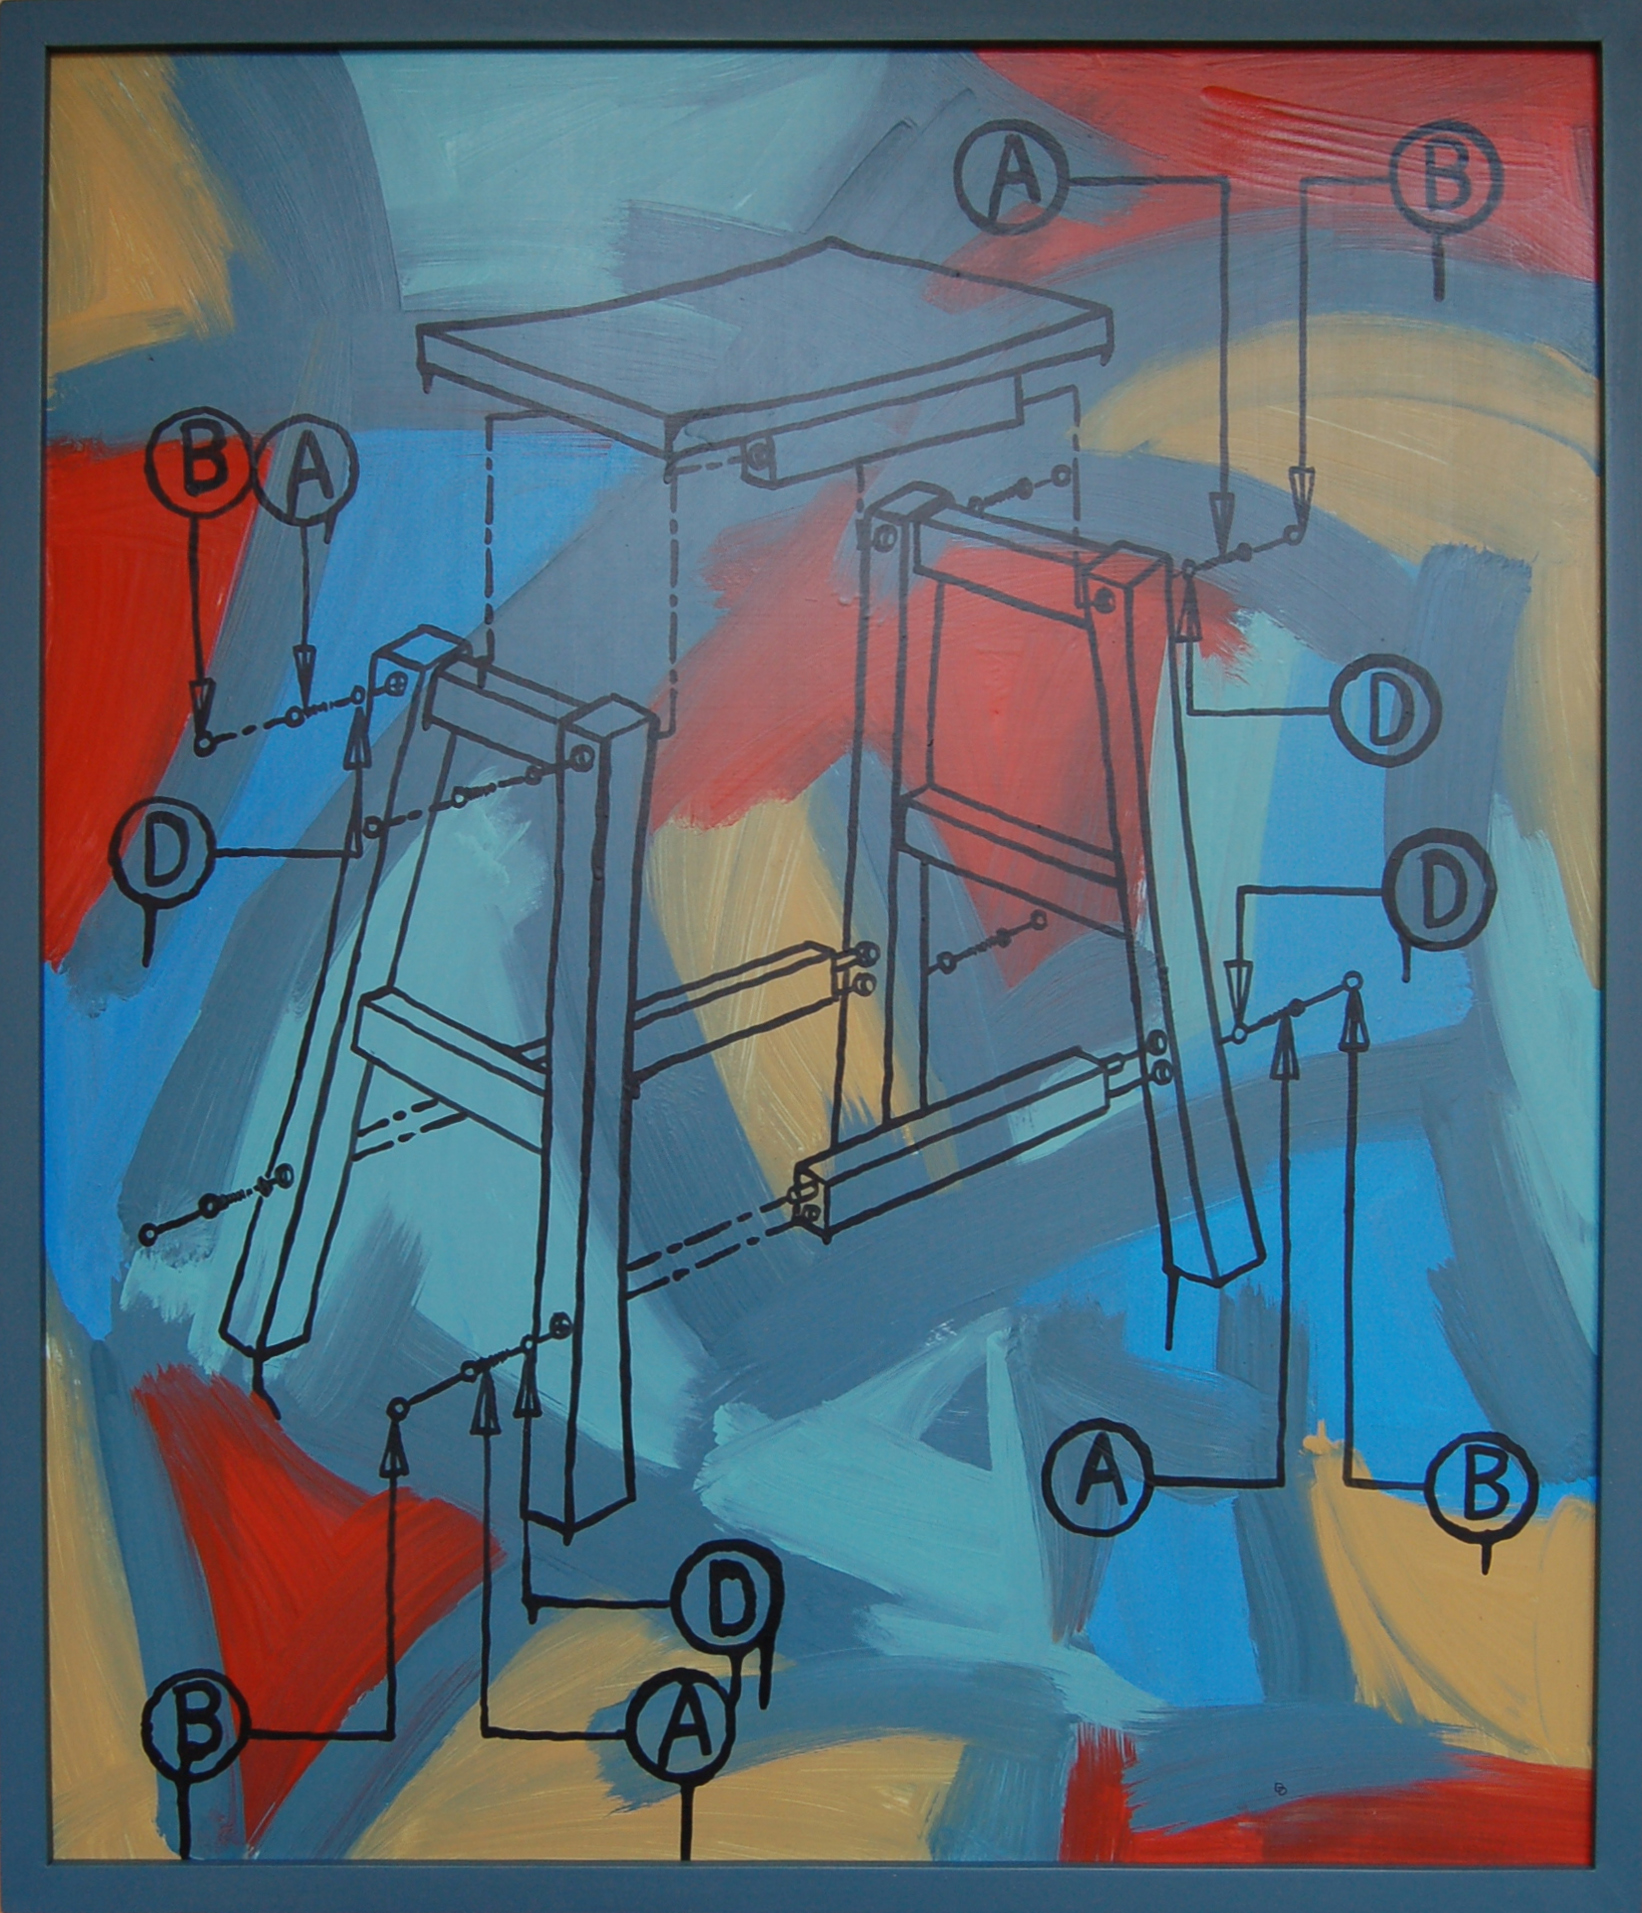 """Abstracted Instructions 1, Latex and Acrylic on Gatorboard, 2013, 25.5"""" x 29.5"""""""